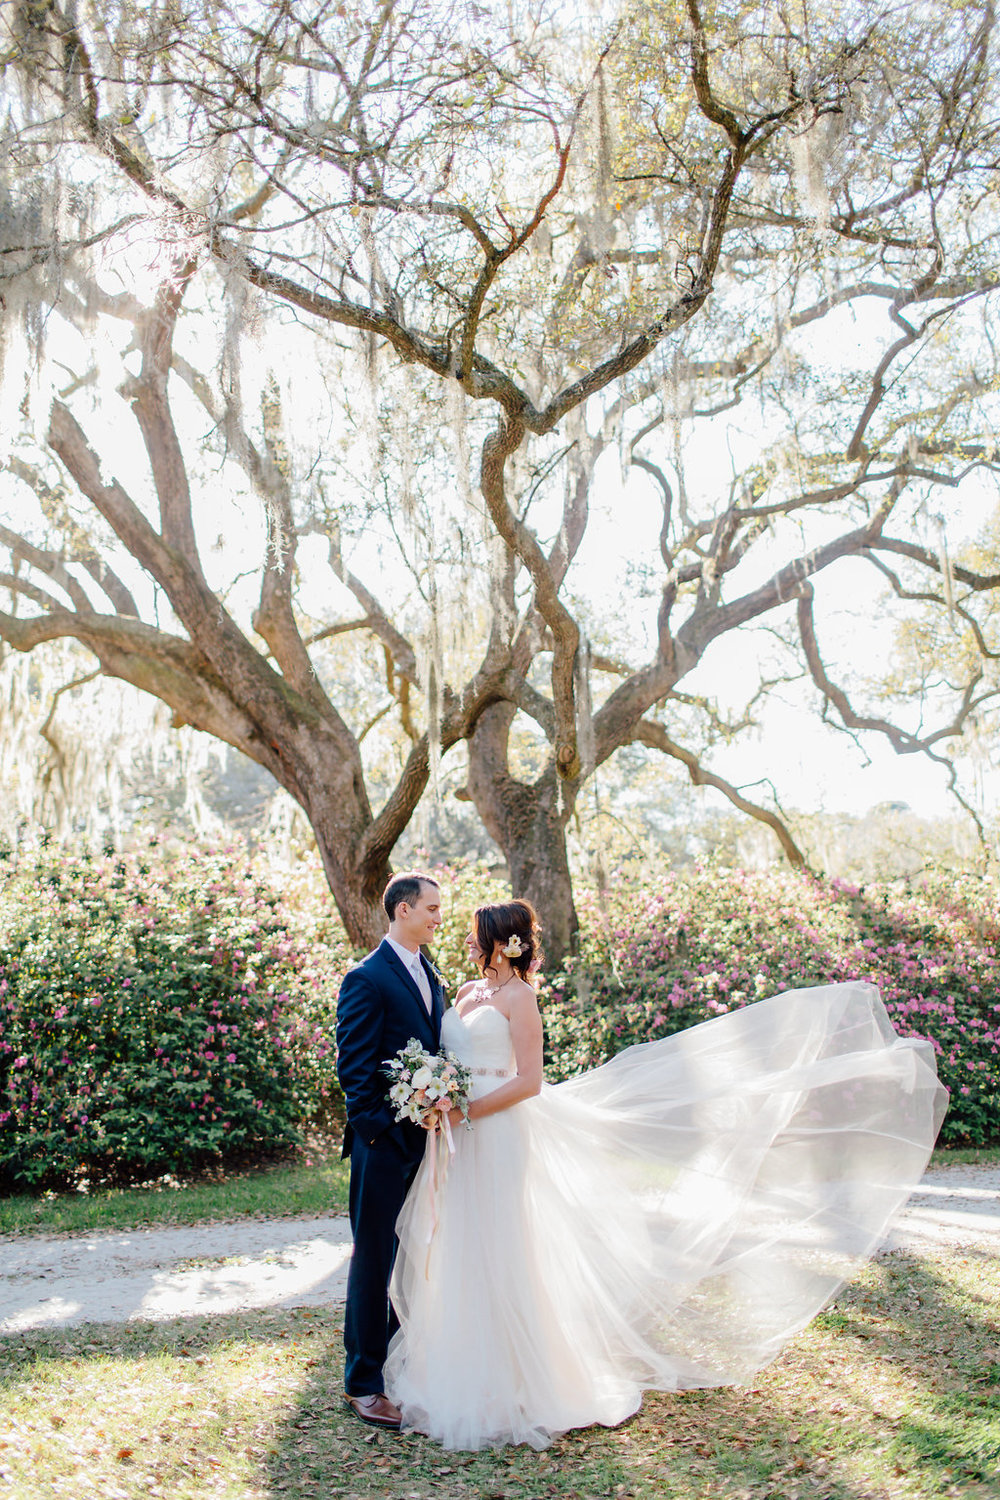 hannah-lane-photography-southern-weddings-blog-charleson-wedding-charleston-styled-shoot-ivory-and-beau-bridal-boutique-blush-by-hayley-paige-candi-blush-tulle-wedding-dress-savannah-bridal-boutique-savannah-wedding-dresses-rosegold-sash-36.jpg